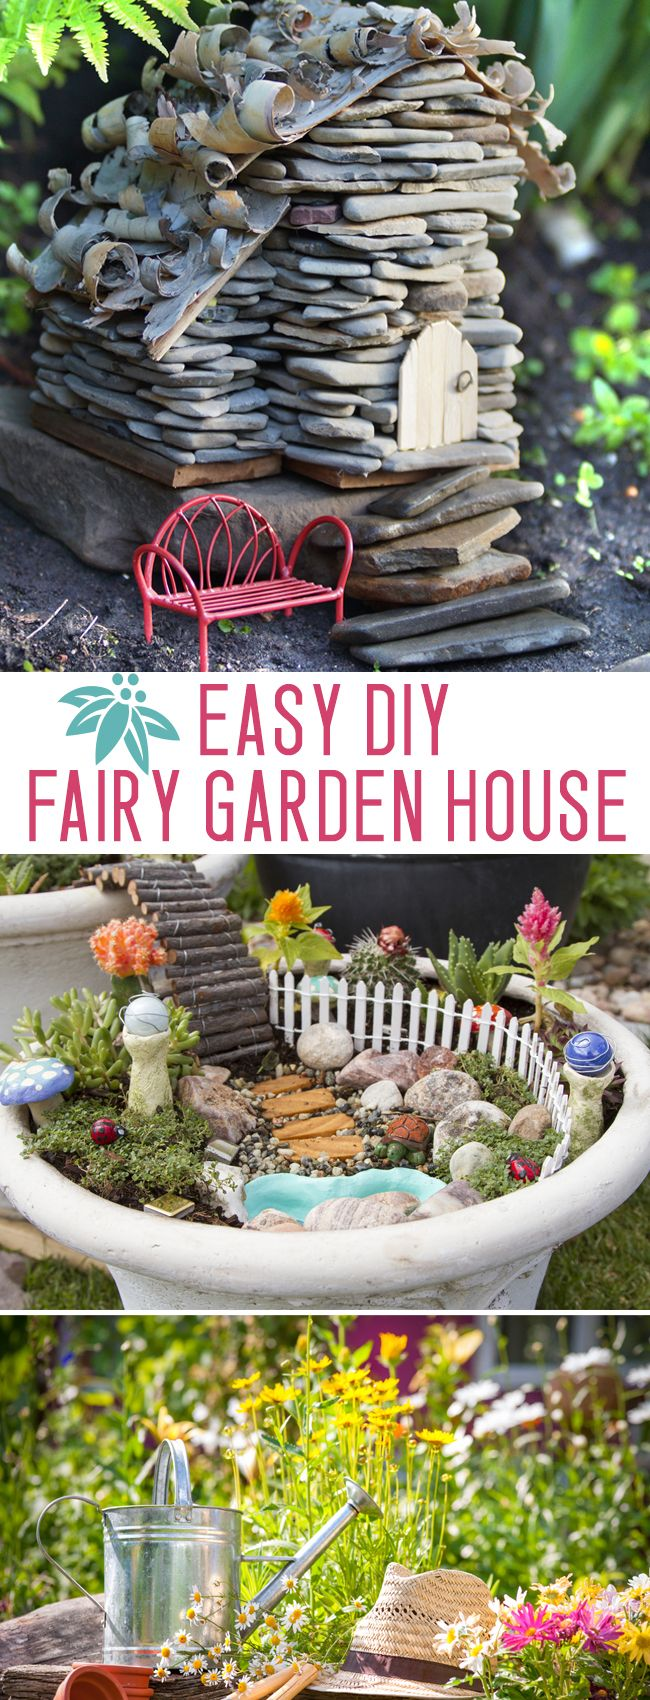 Make an adorable stone fairy garden house - this easy DIY is fun for kids OR grown ups!